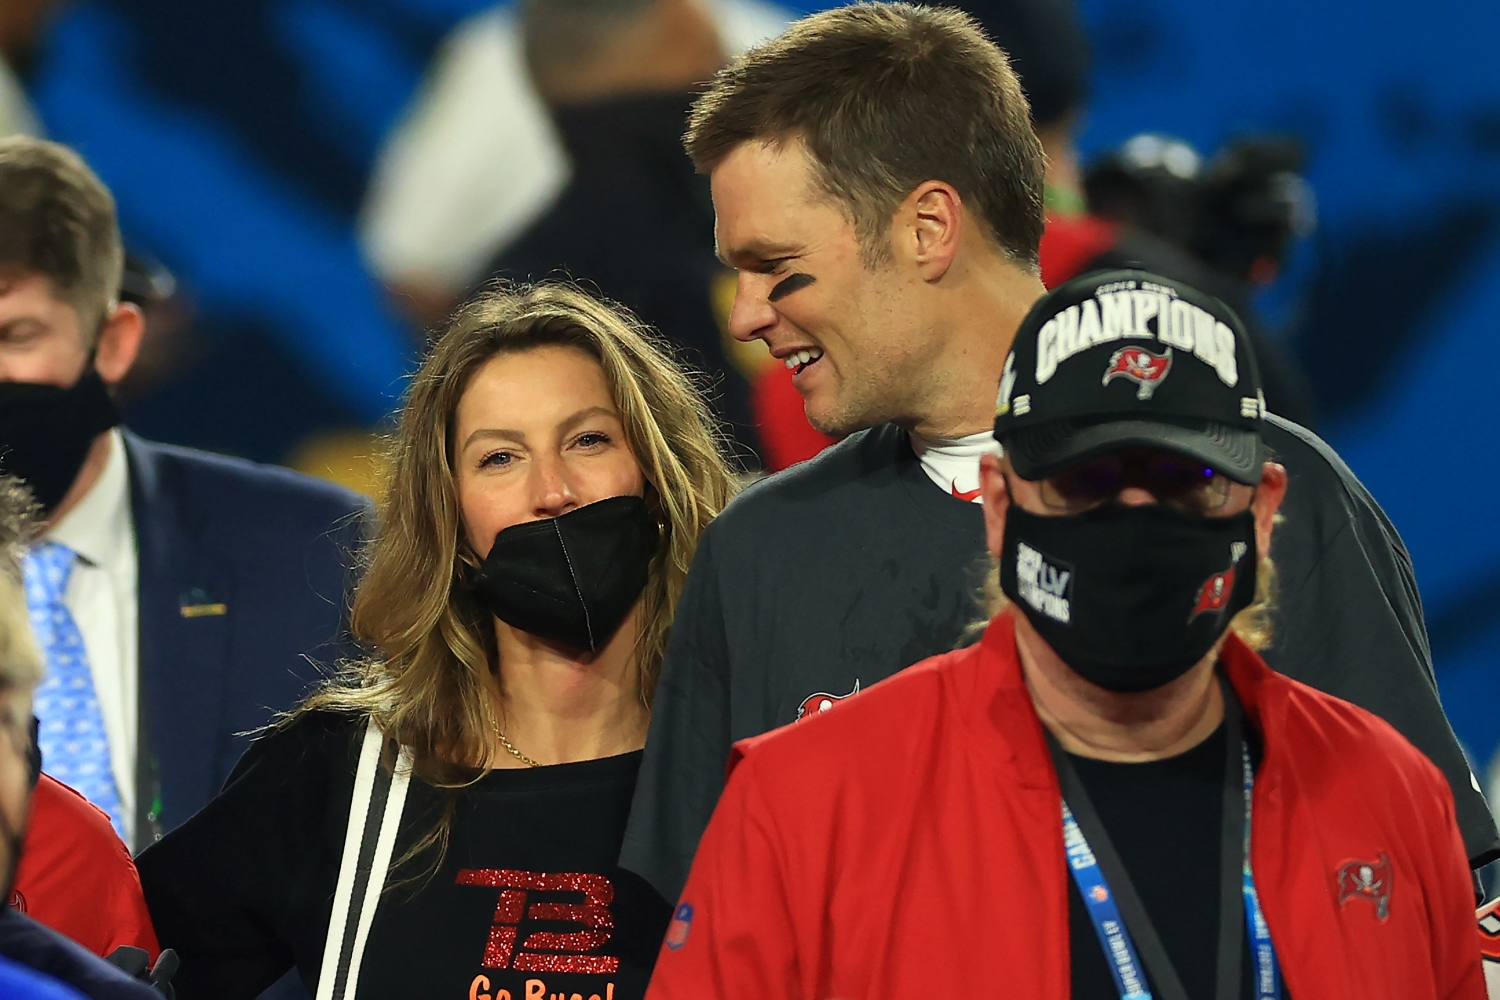 Tom Brady of the Tampa Bay Buccaneers celebrates with Gisele Bundchen after winning Super Bowl 55 on Feb. 7, 2021.